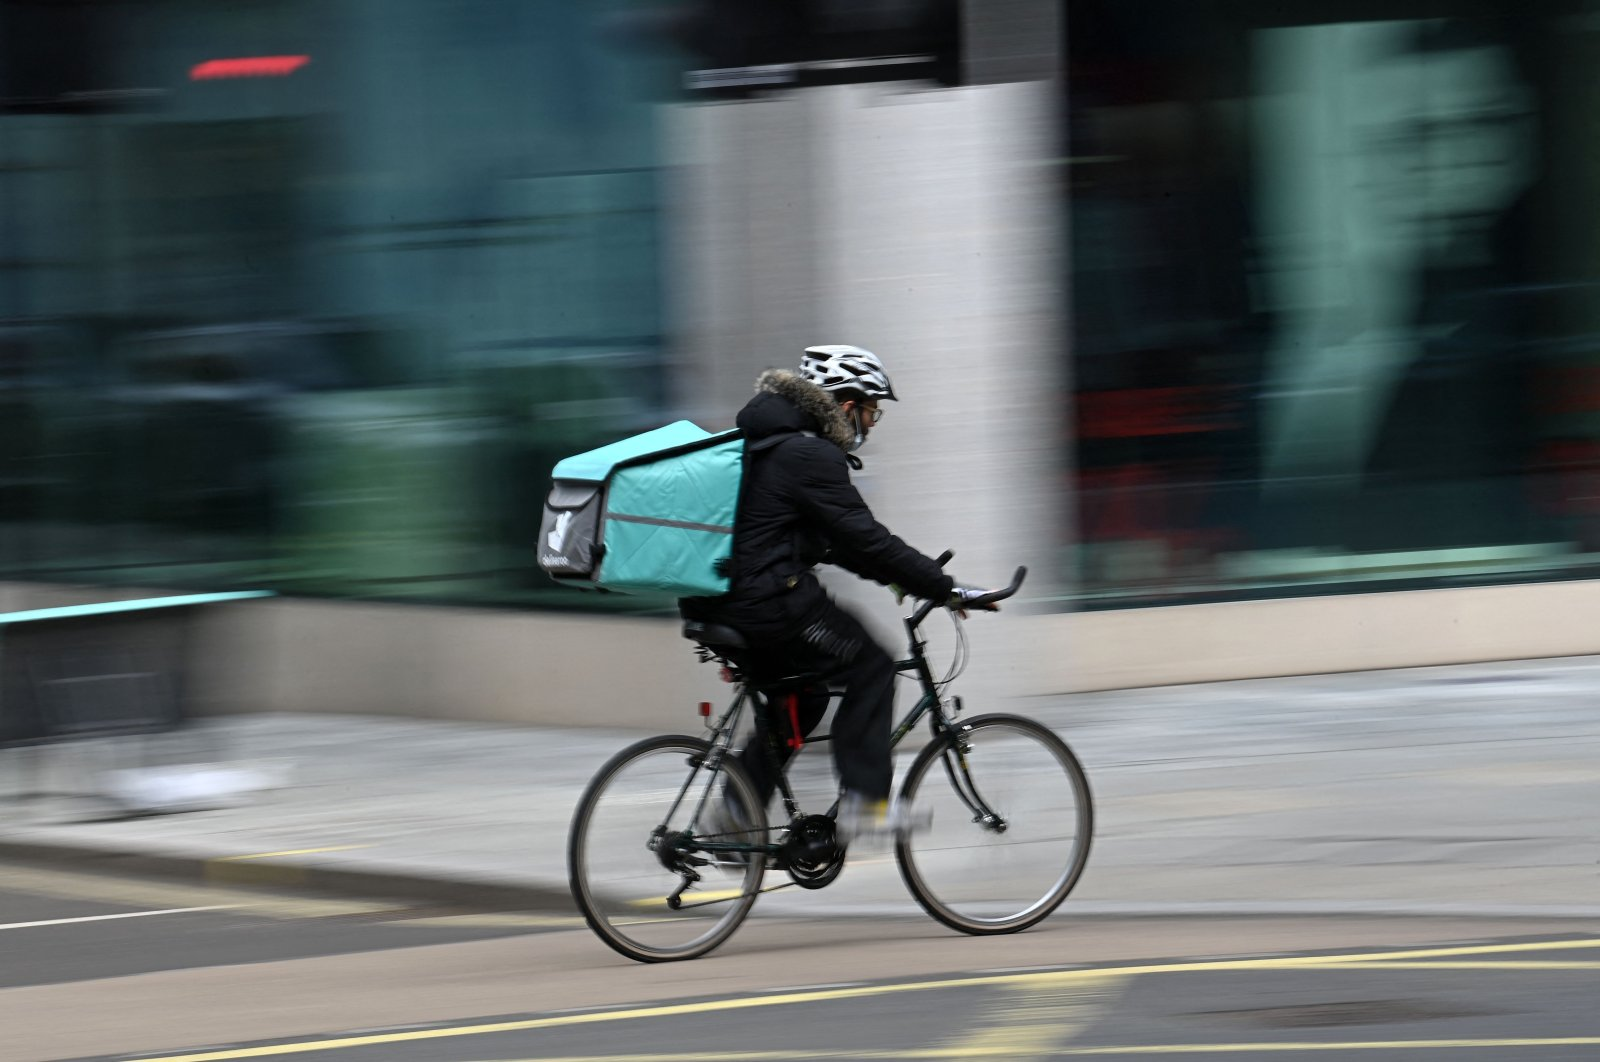 A Deliveroo rider cycles through central London, U.K., March 26, 2021. (AFP Photo)